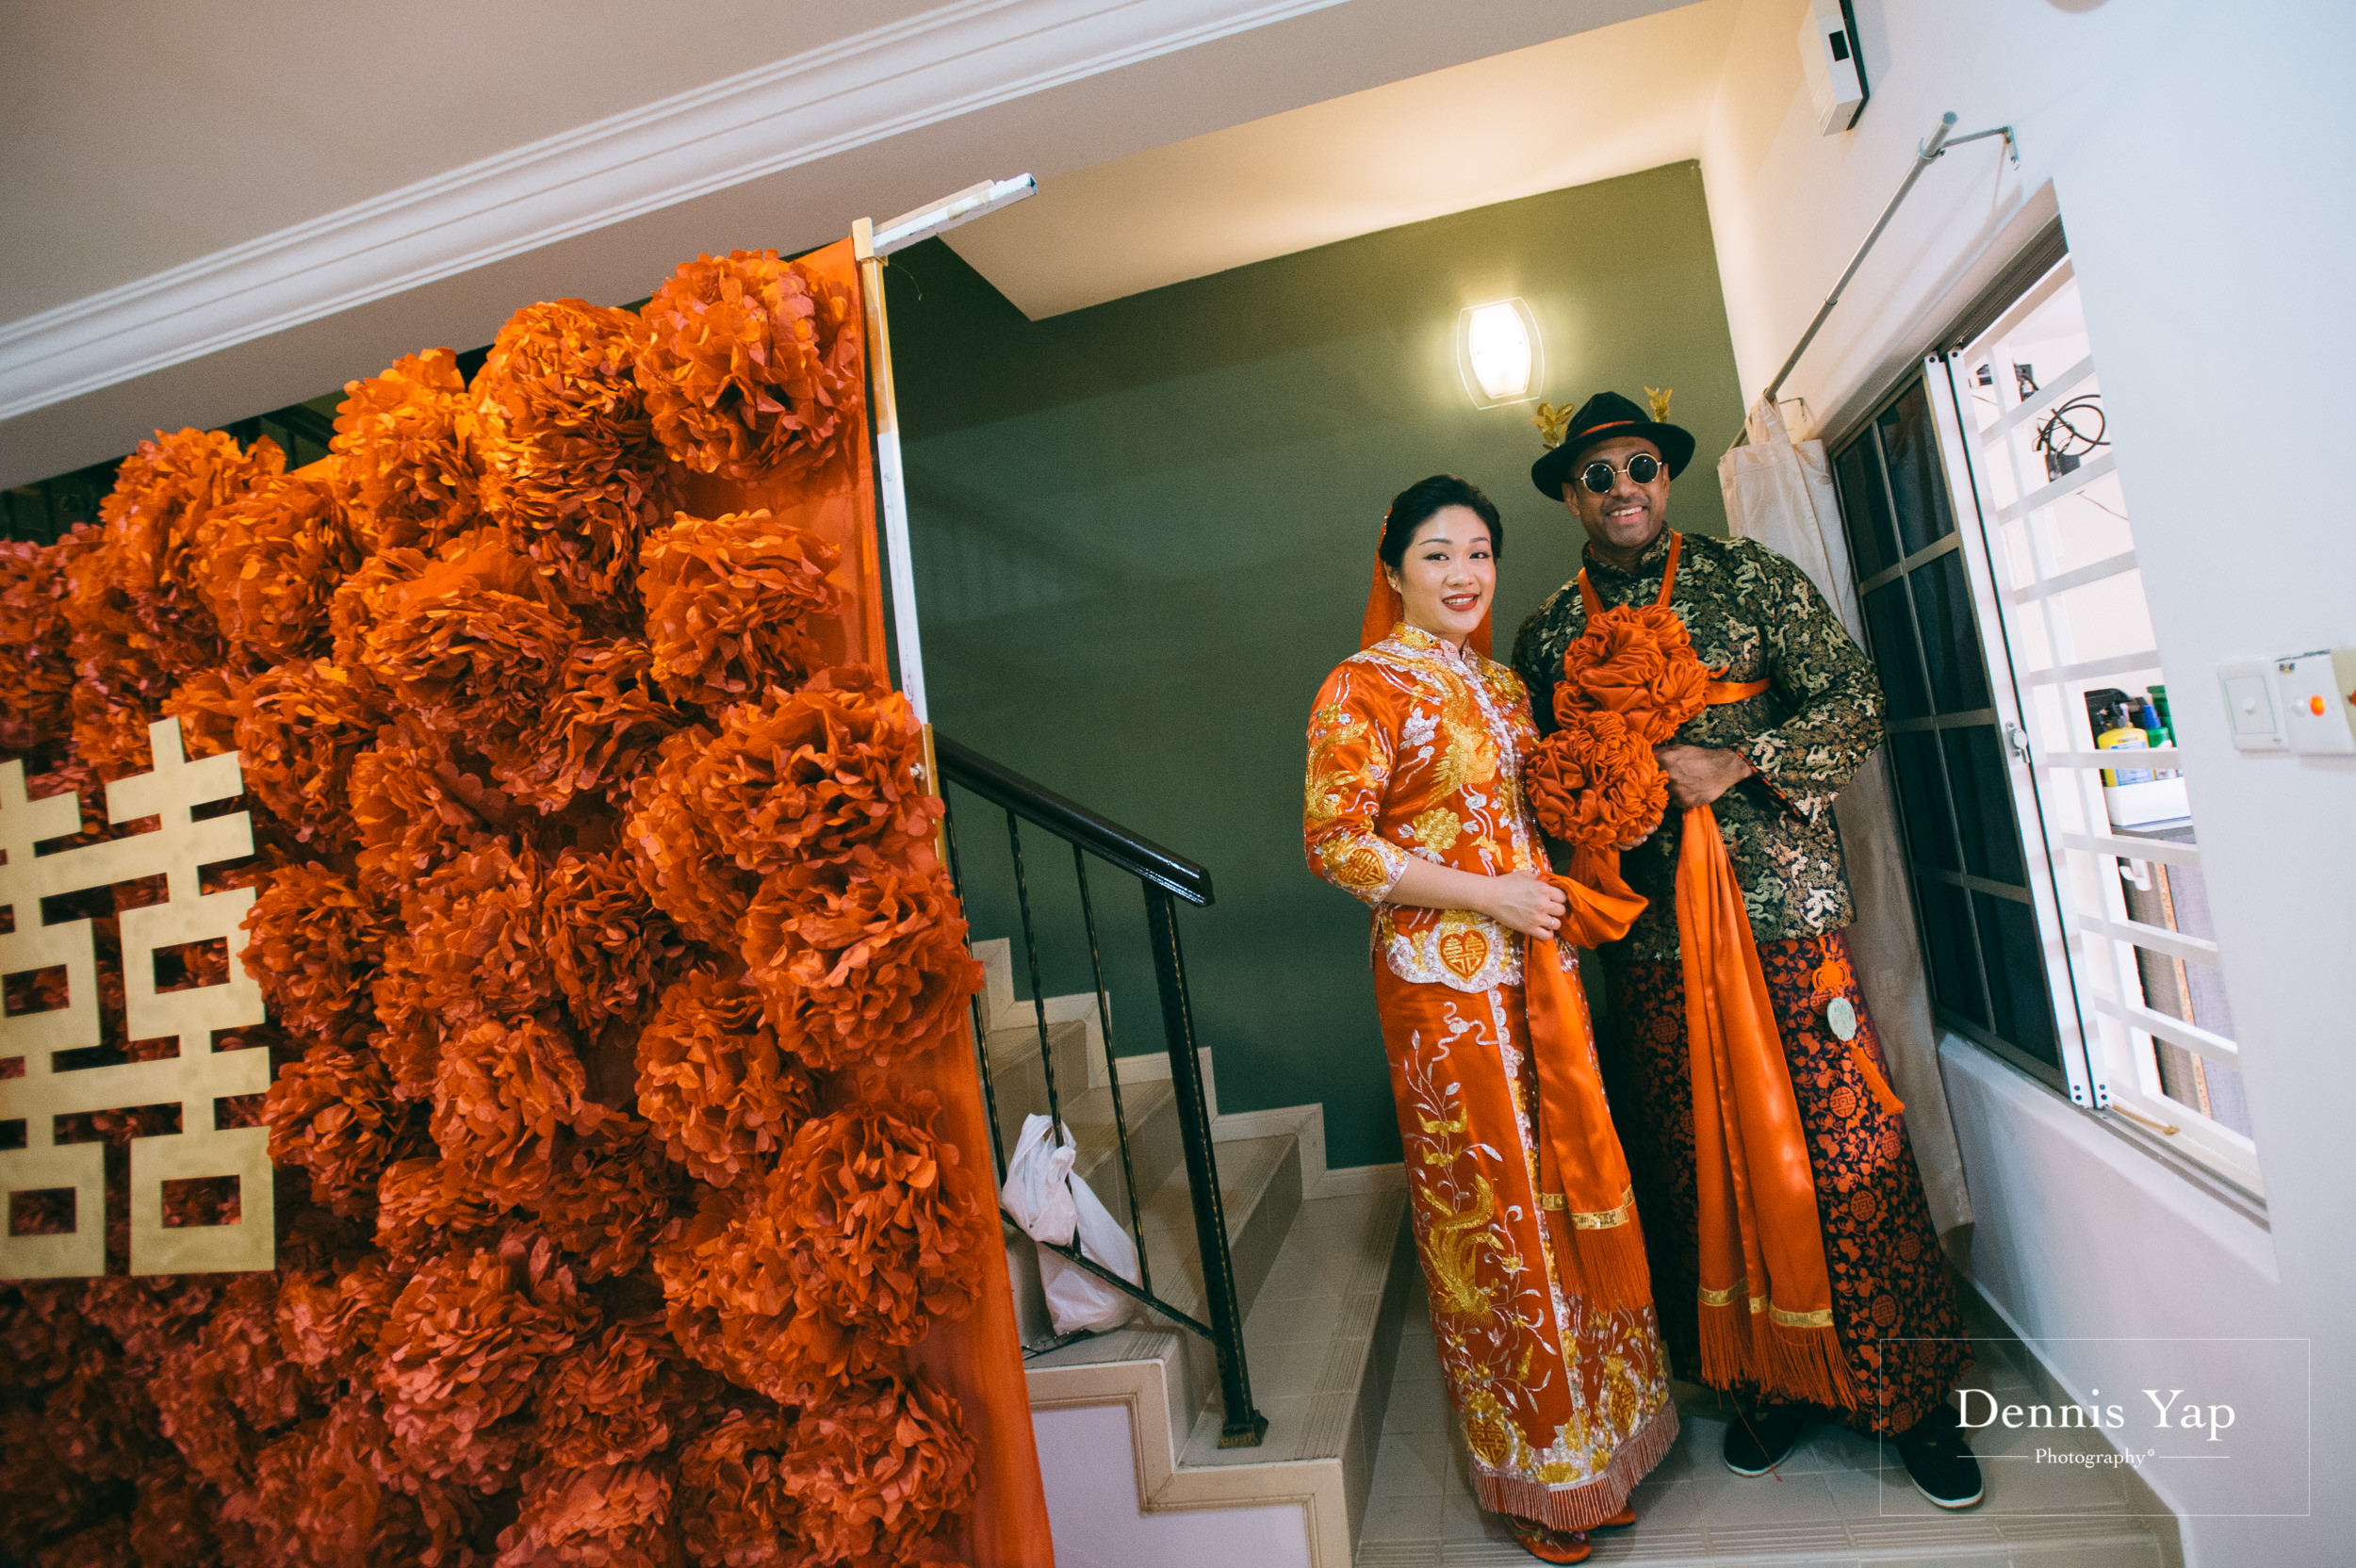 azmi zahraa wedding day gate crash traditional chinese and malay wedding dennis yap malaysia photographer-14.jpg